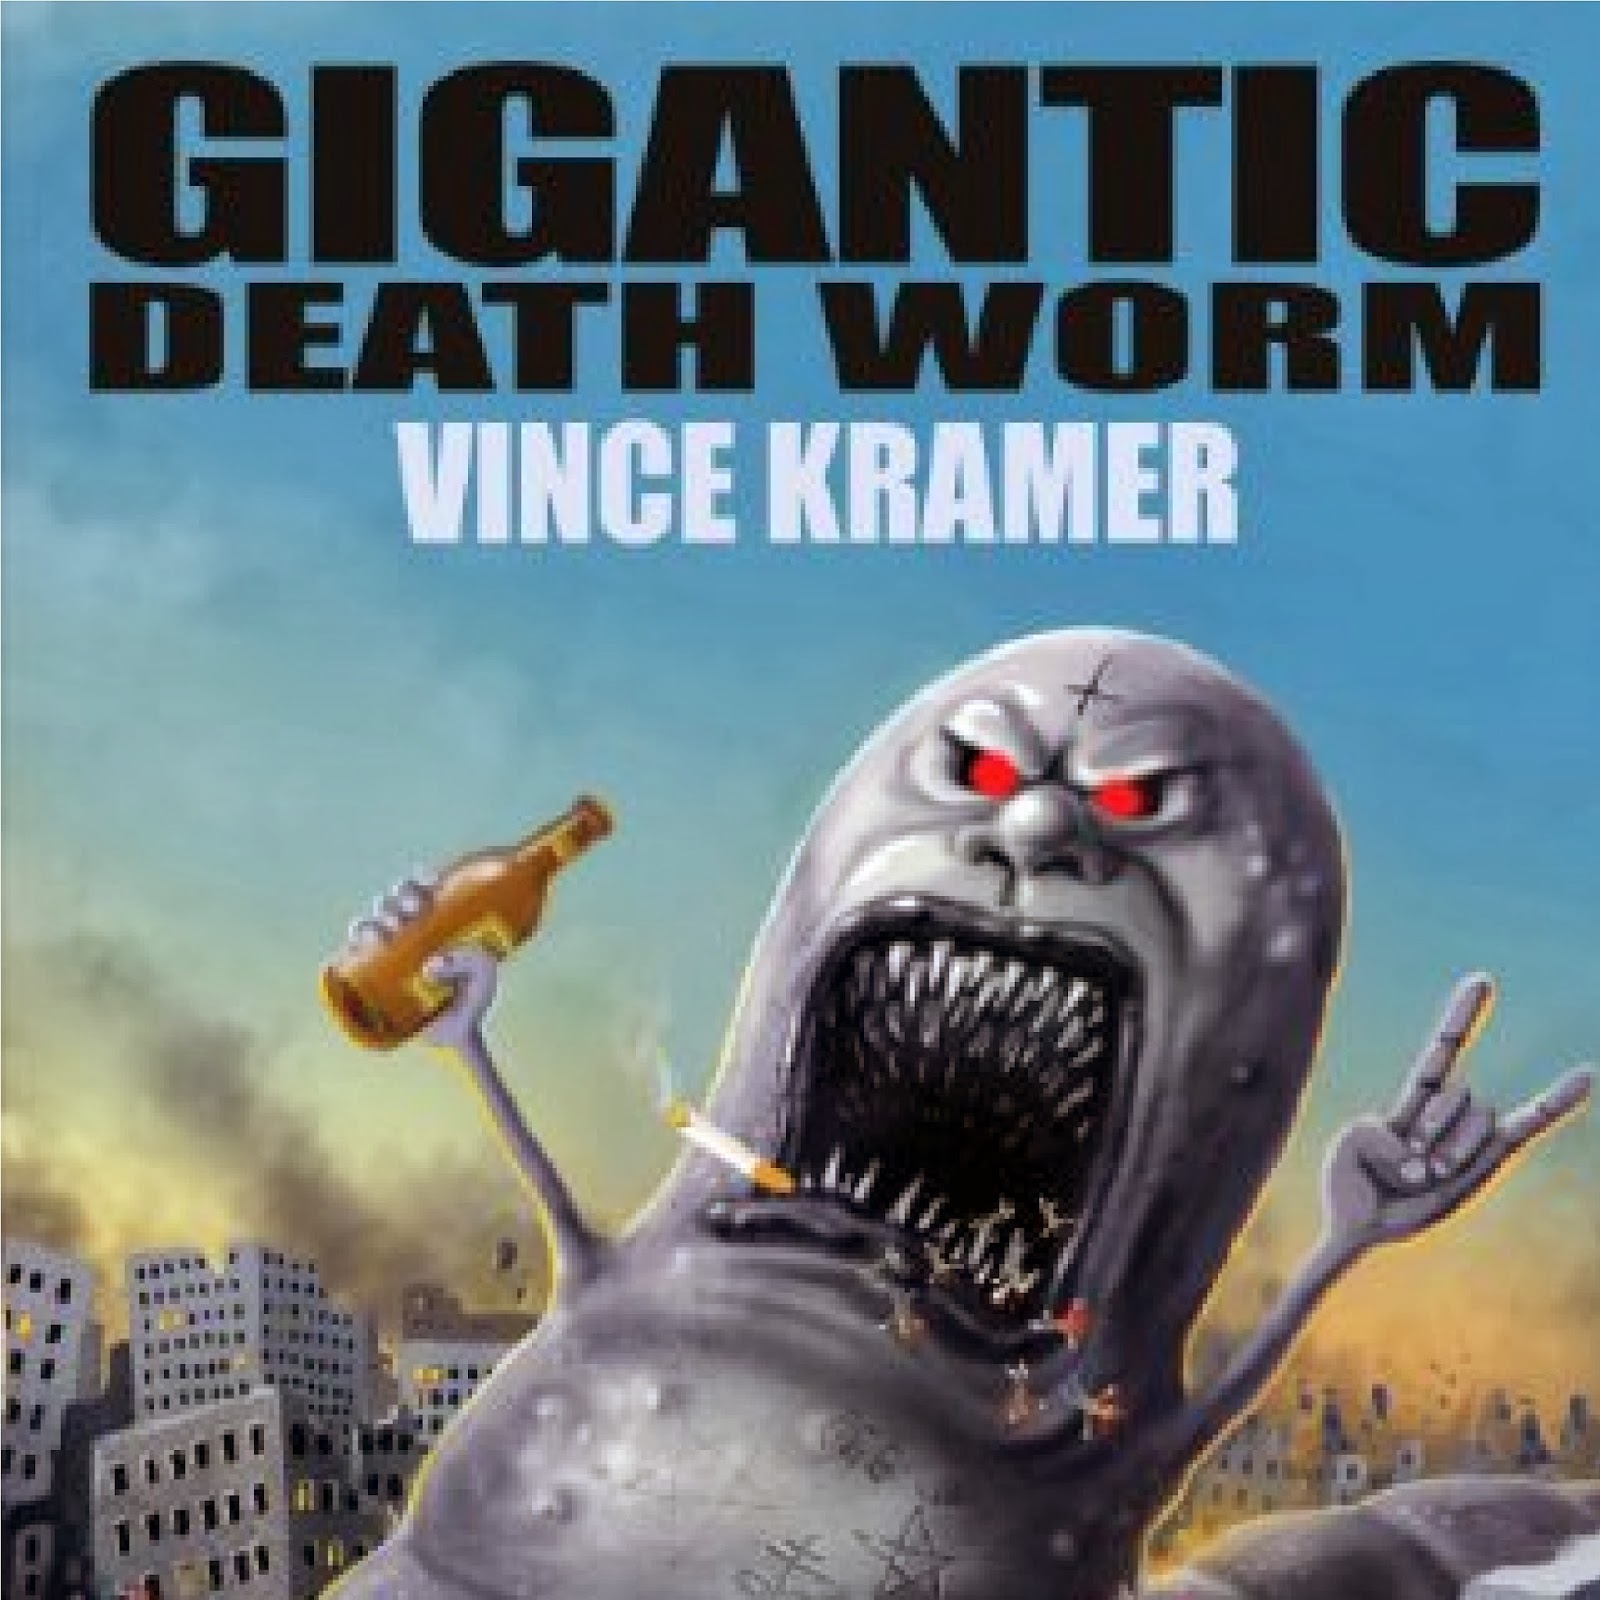 http://www.audible.com/pd/Comedy/Gigantic-Death-Worm-Audiobook/B00HNES99A/ref=a_search_c4_1_2_srImg?qid=1388786856&sr=1-2